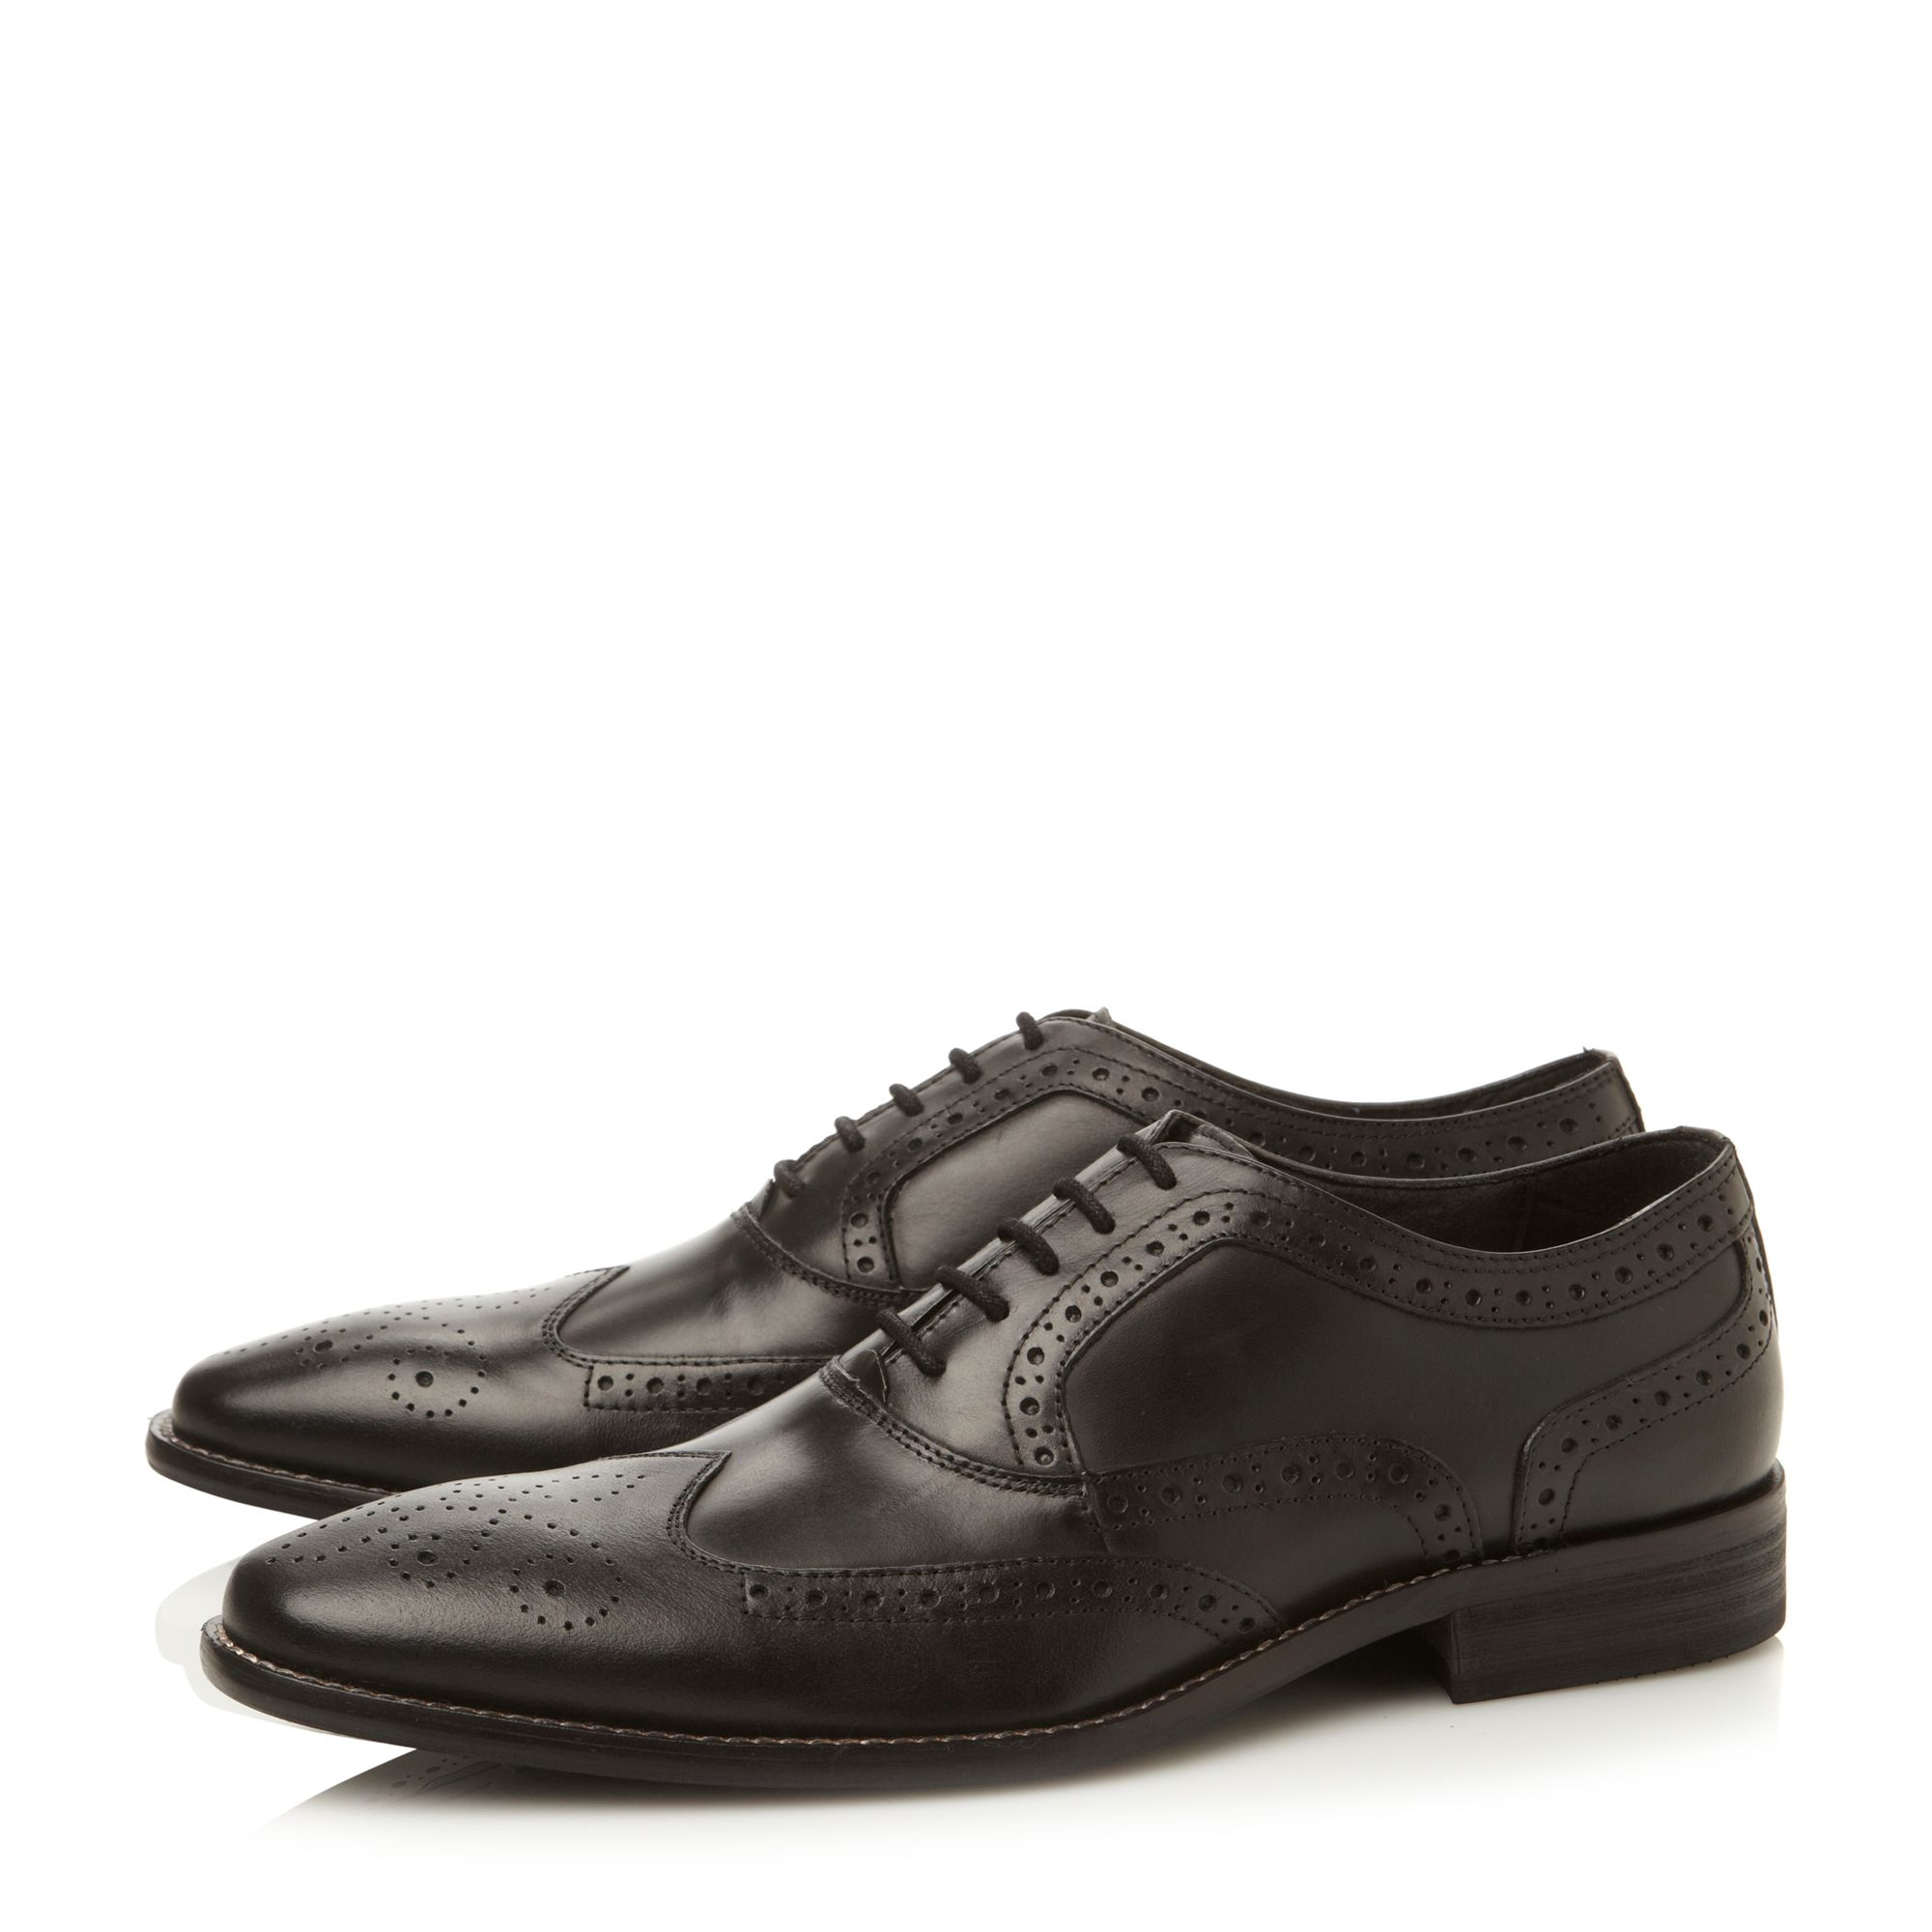 Persitt wingtip oxford lace up shoes